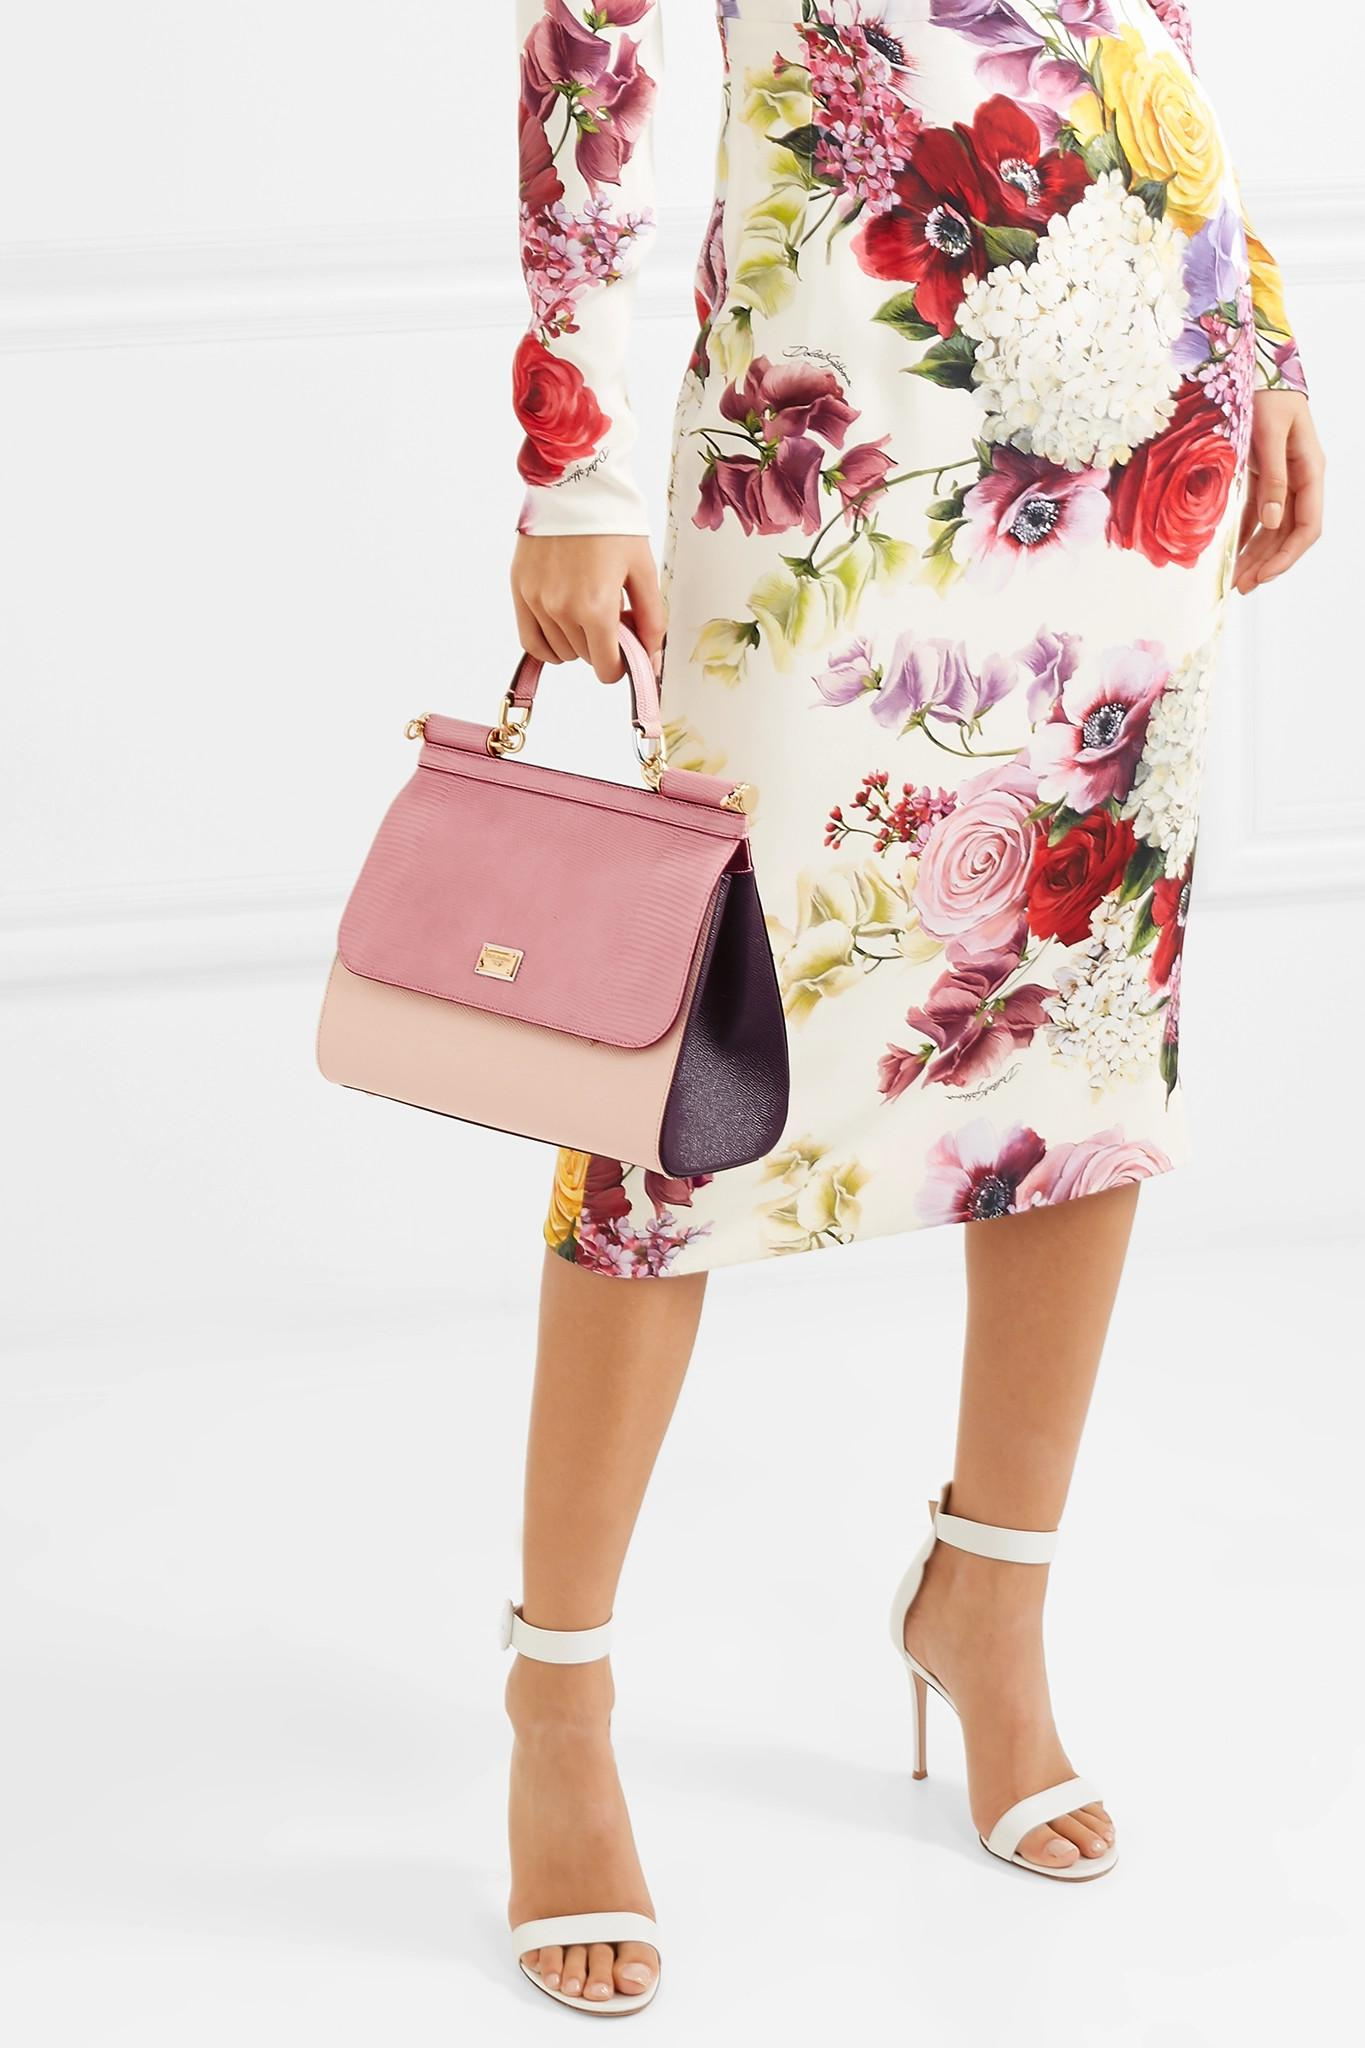 748828cc83 Dolce   Gabbana - Pink Miss Sicily Small Leather Shoulder Bag - Lyst. View  fullscreen